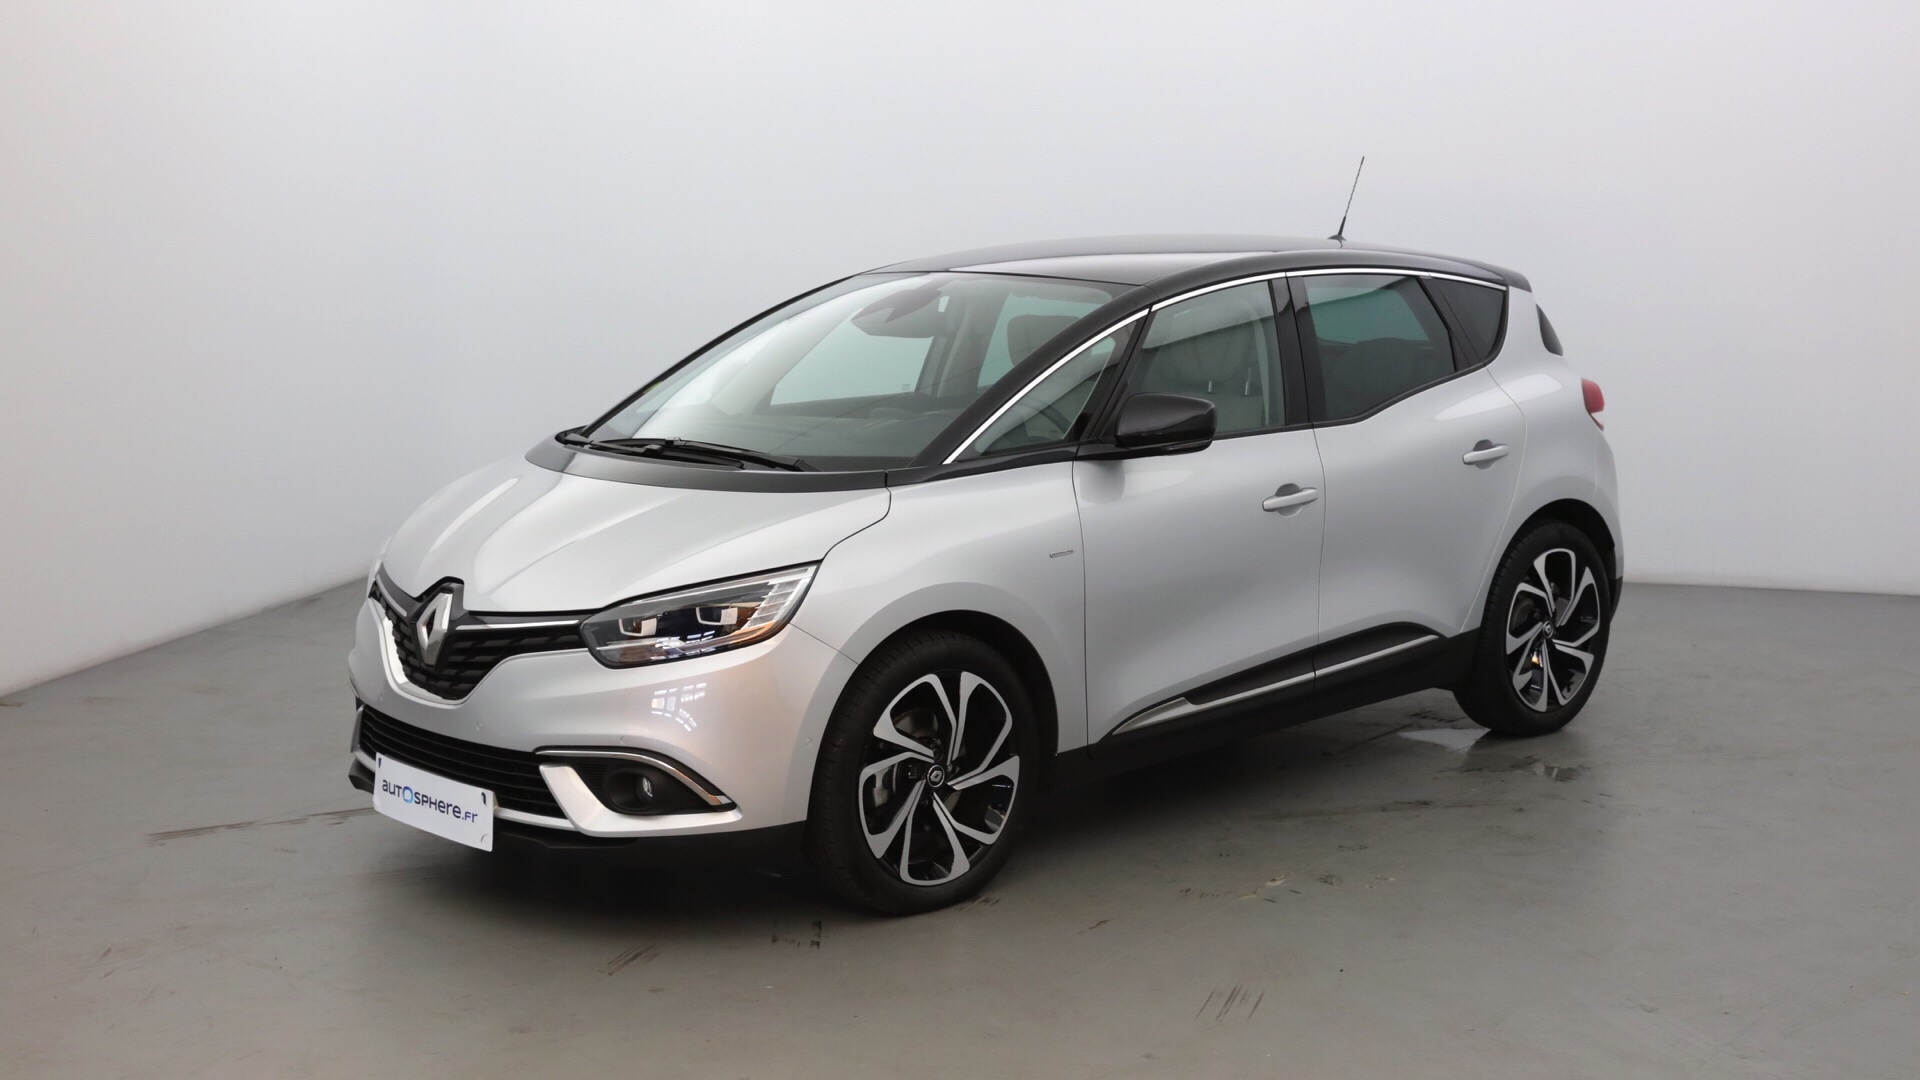 RENAULT SCENIC 1.6 DCI 130CH ENERGY EDITION ONE - Photo 1